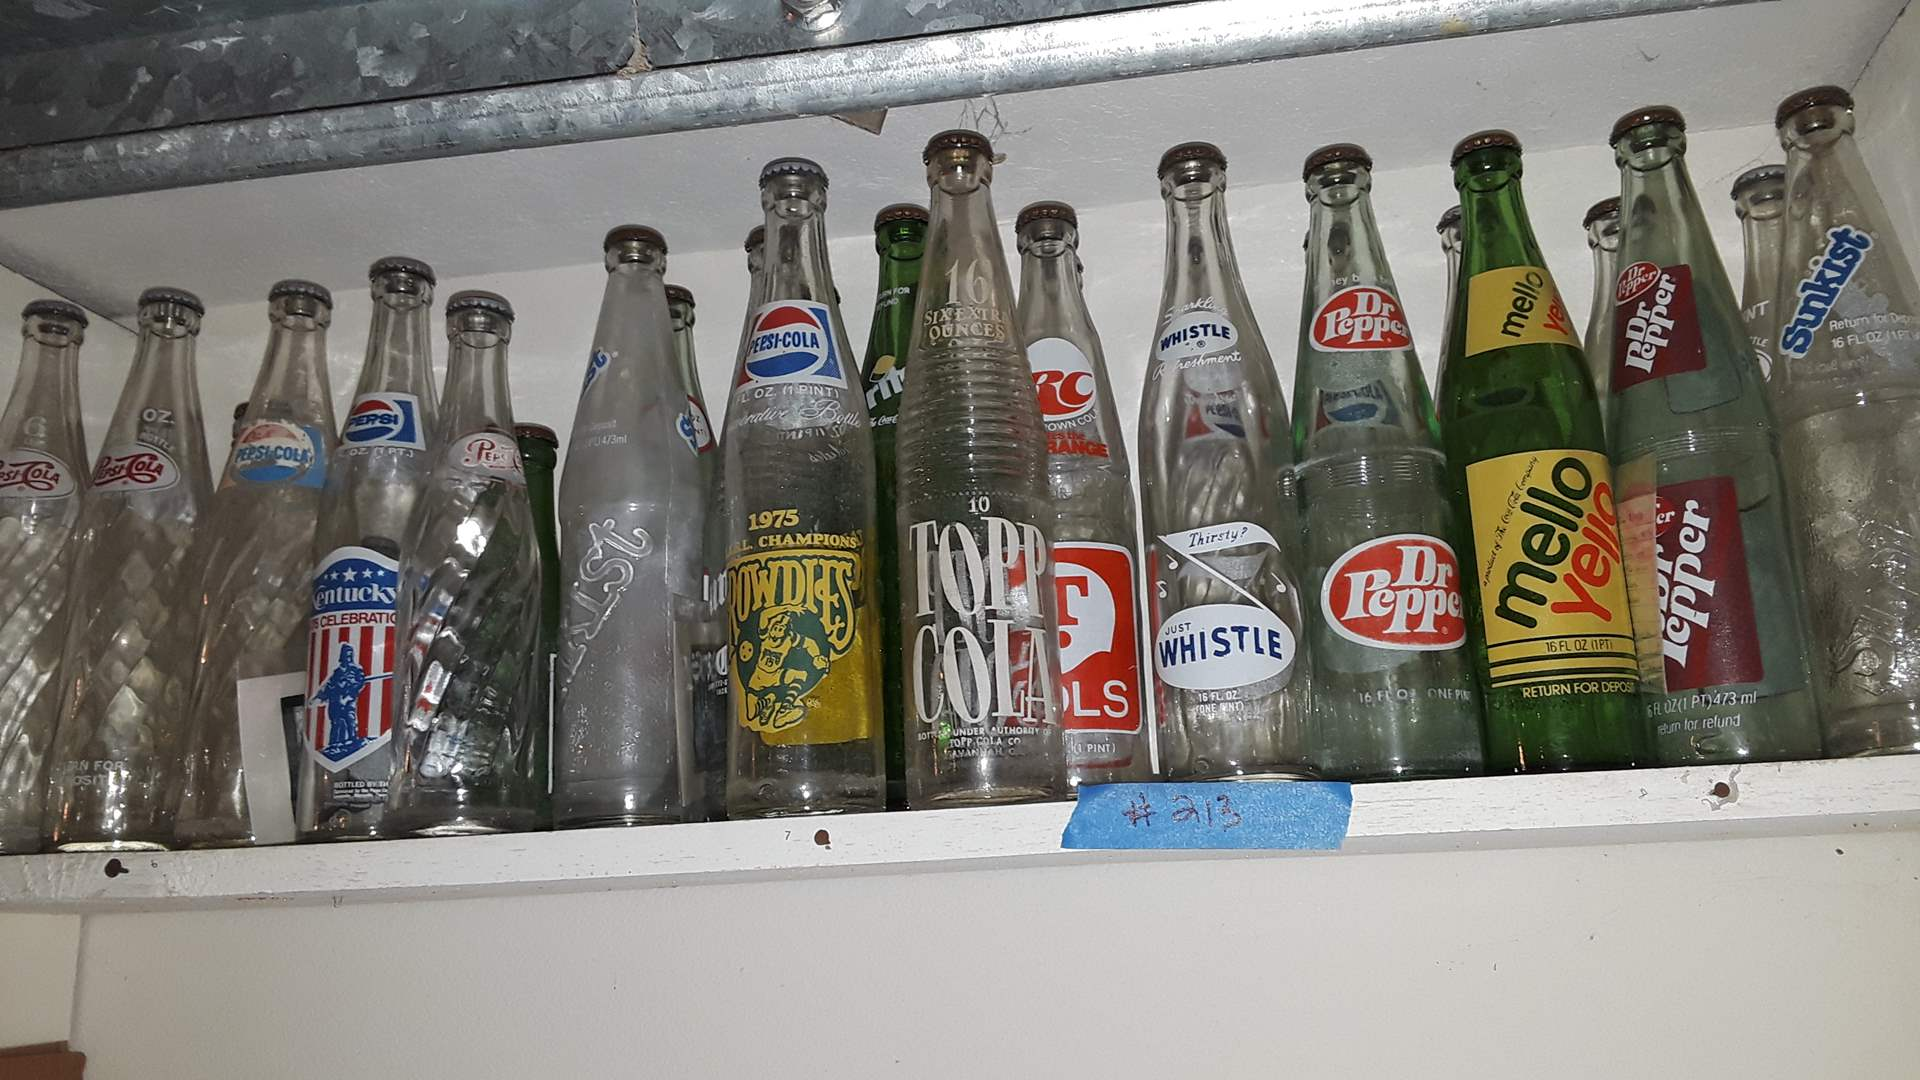 Lot # 213 COLLECTIBLE SODA BOTTLES, WHISTLE, TOPP COLA, RC VOLS